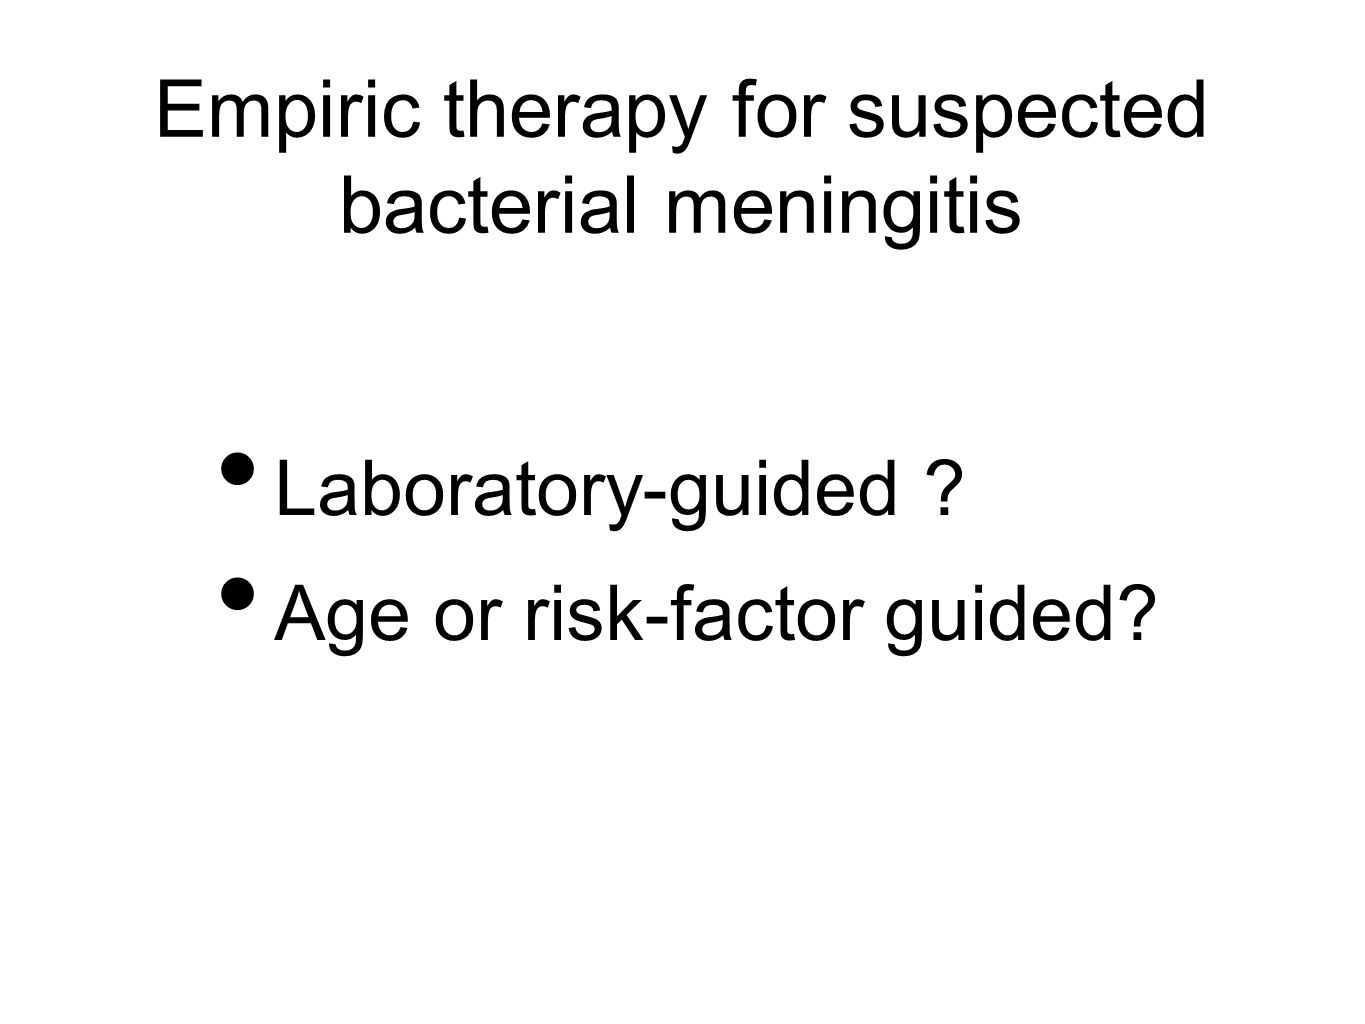 Empiric therapy for suspected bacterial meningitis Laboratory-guided Age or risk-factor guided